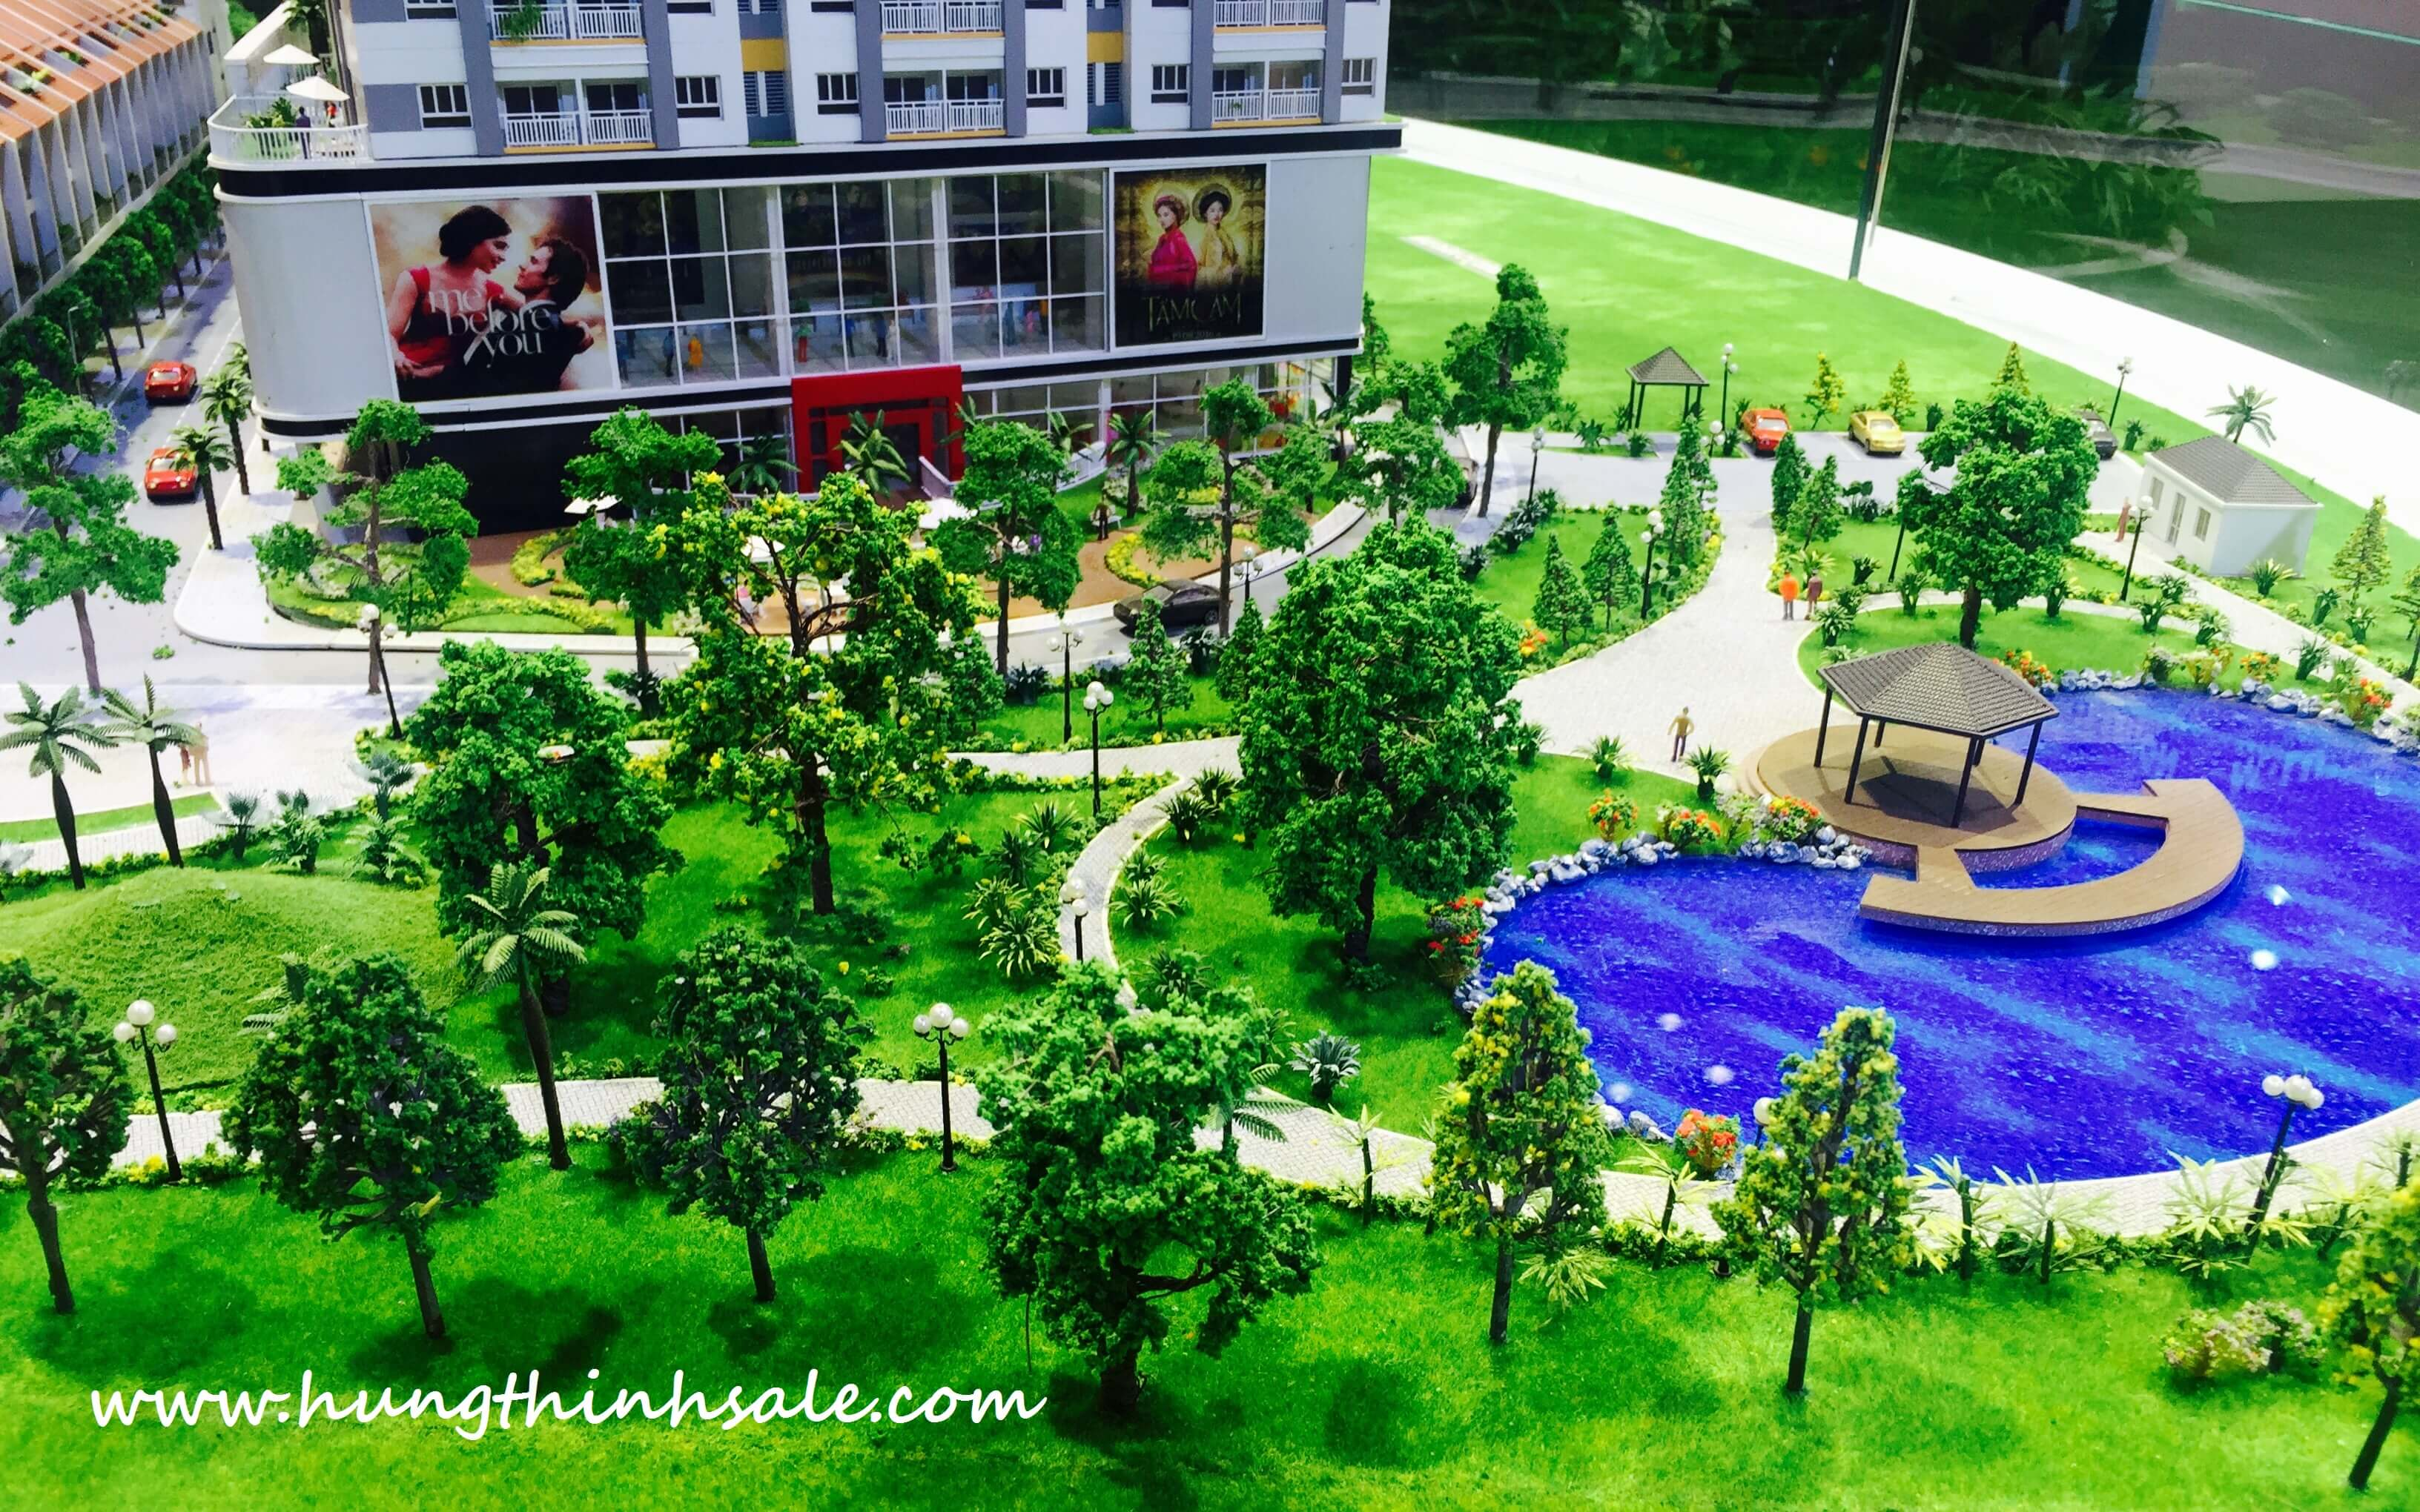 nha mau moonlight residences